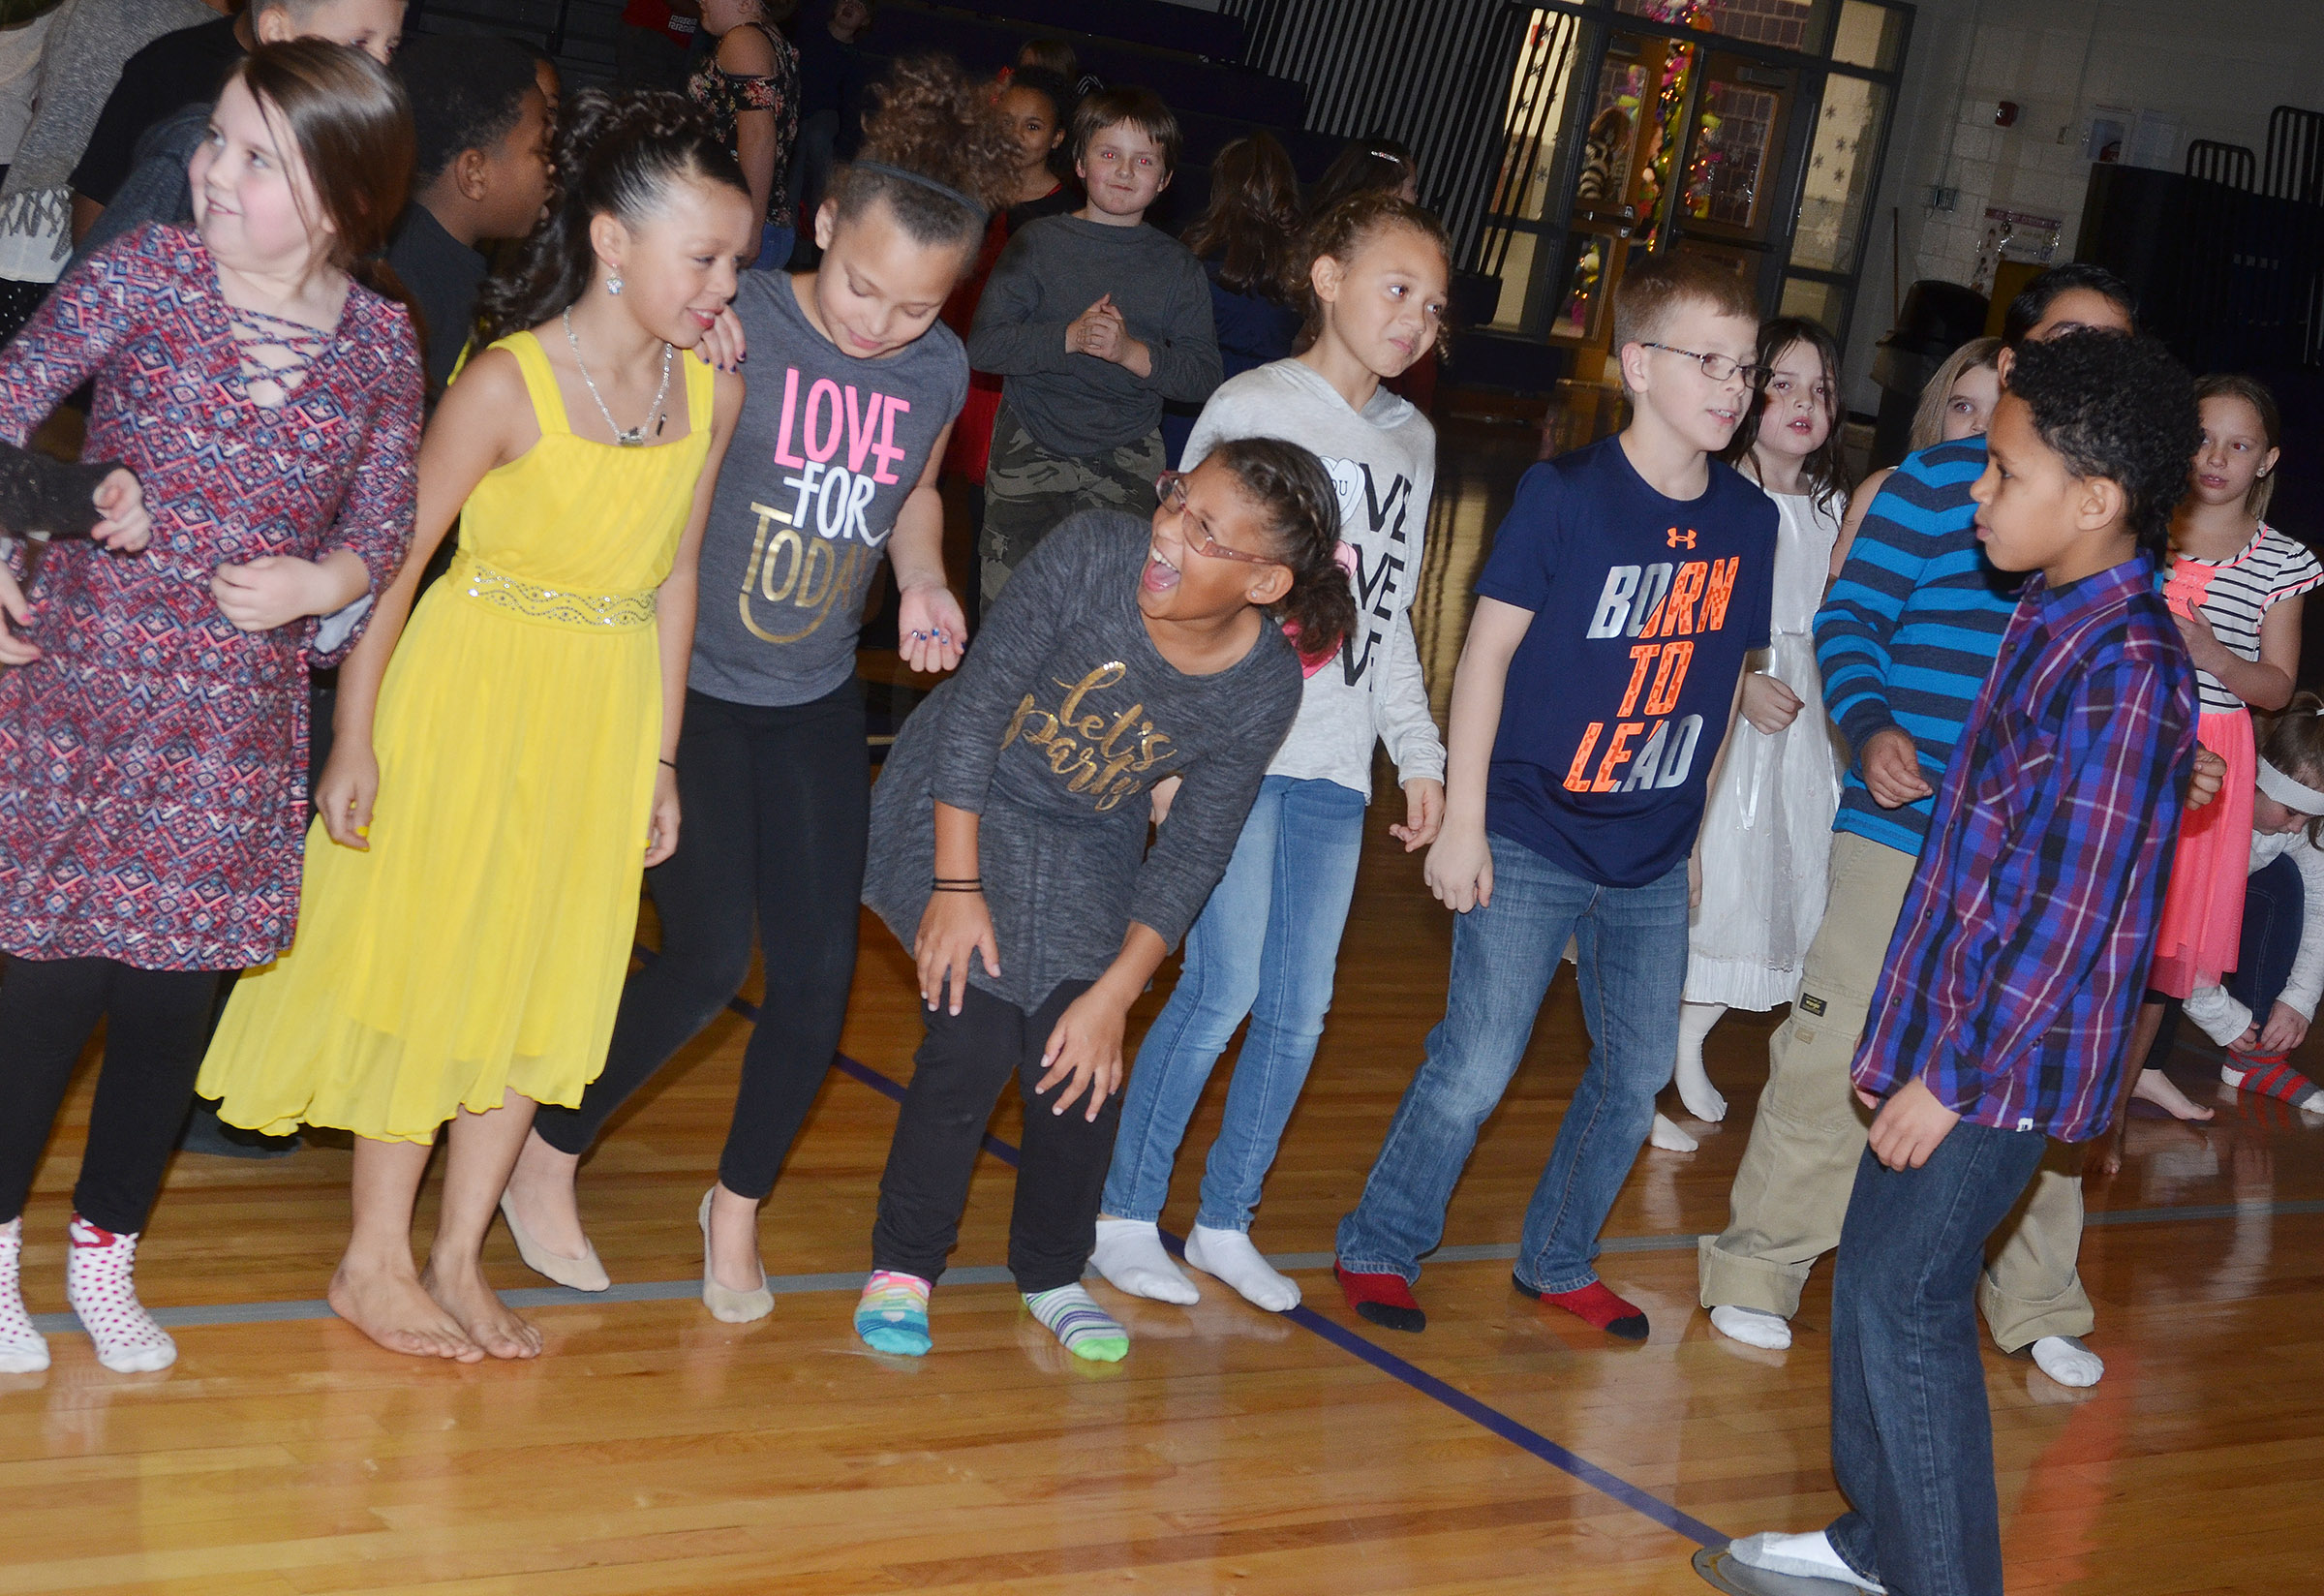 CES students have fun dancing together.